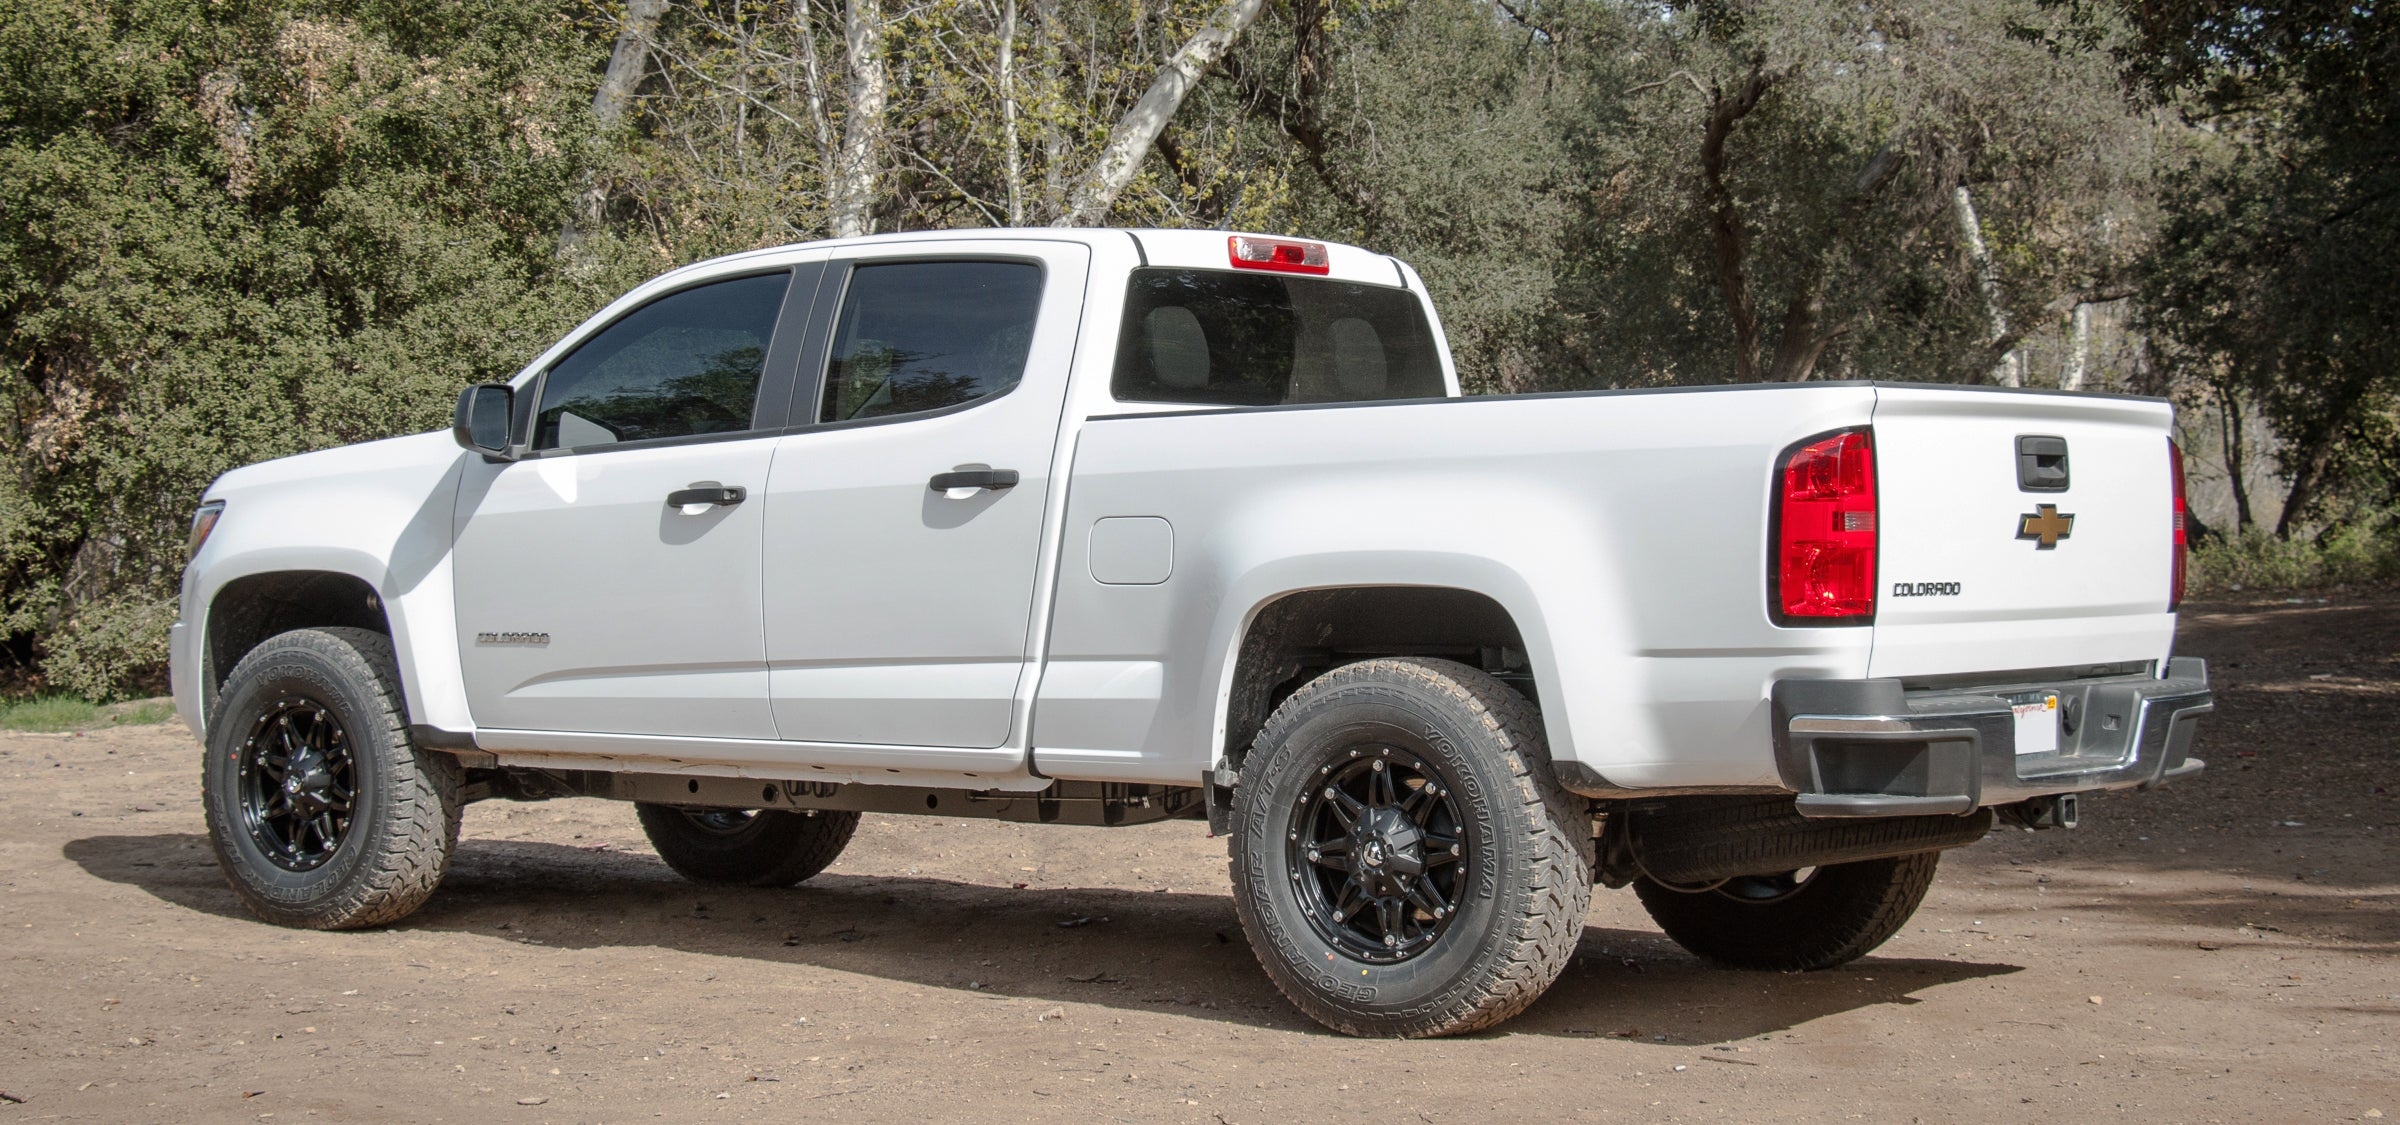 2015 Chevy Colorado Diesel Price Want a Colorado ZR2? Call an Icon